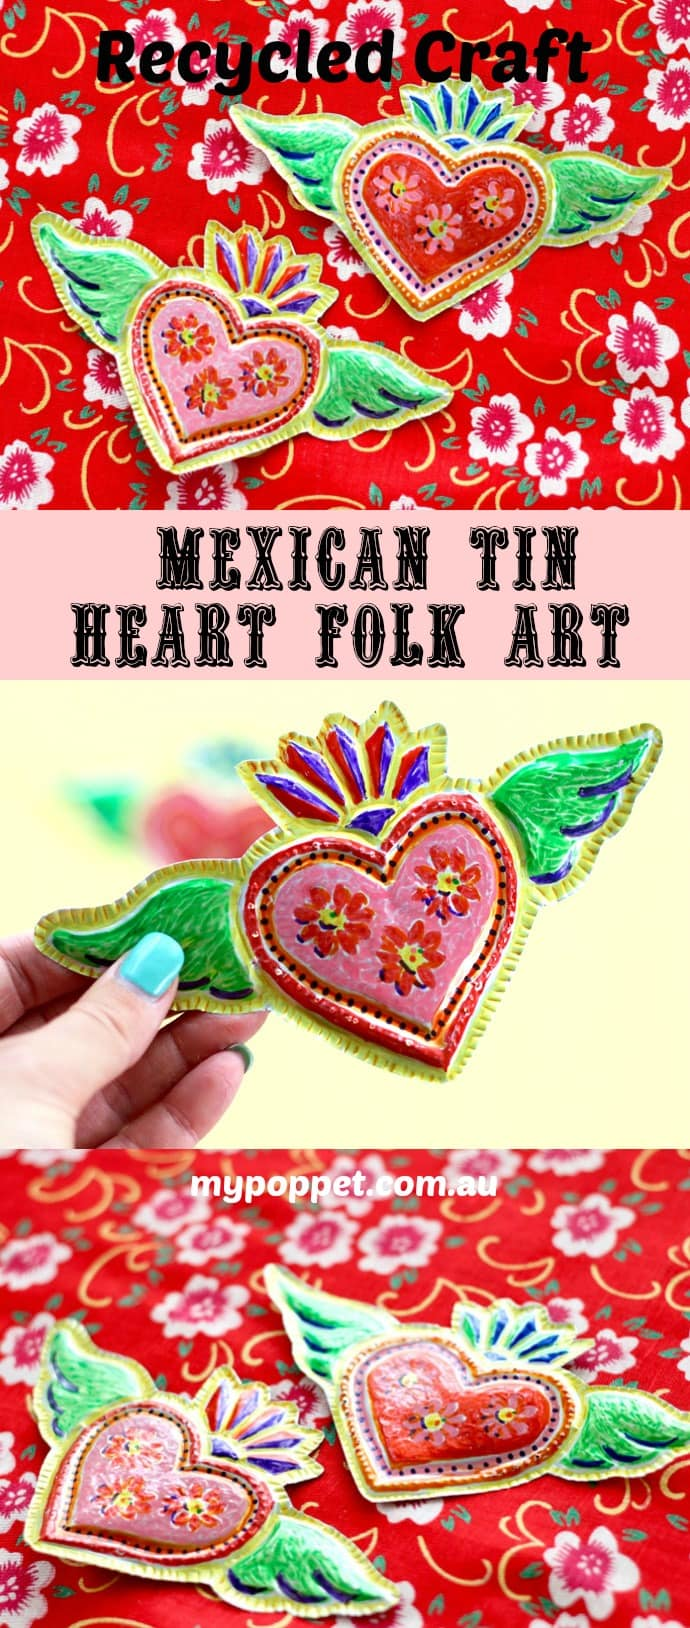 Recycled craft - Mexican Tin Heart Folk Art mypoppet.com.au